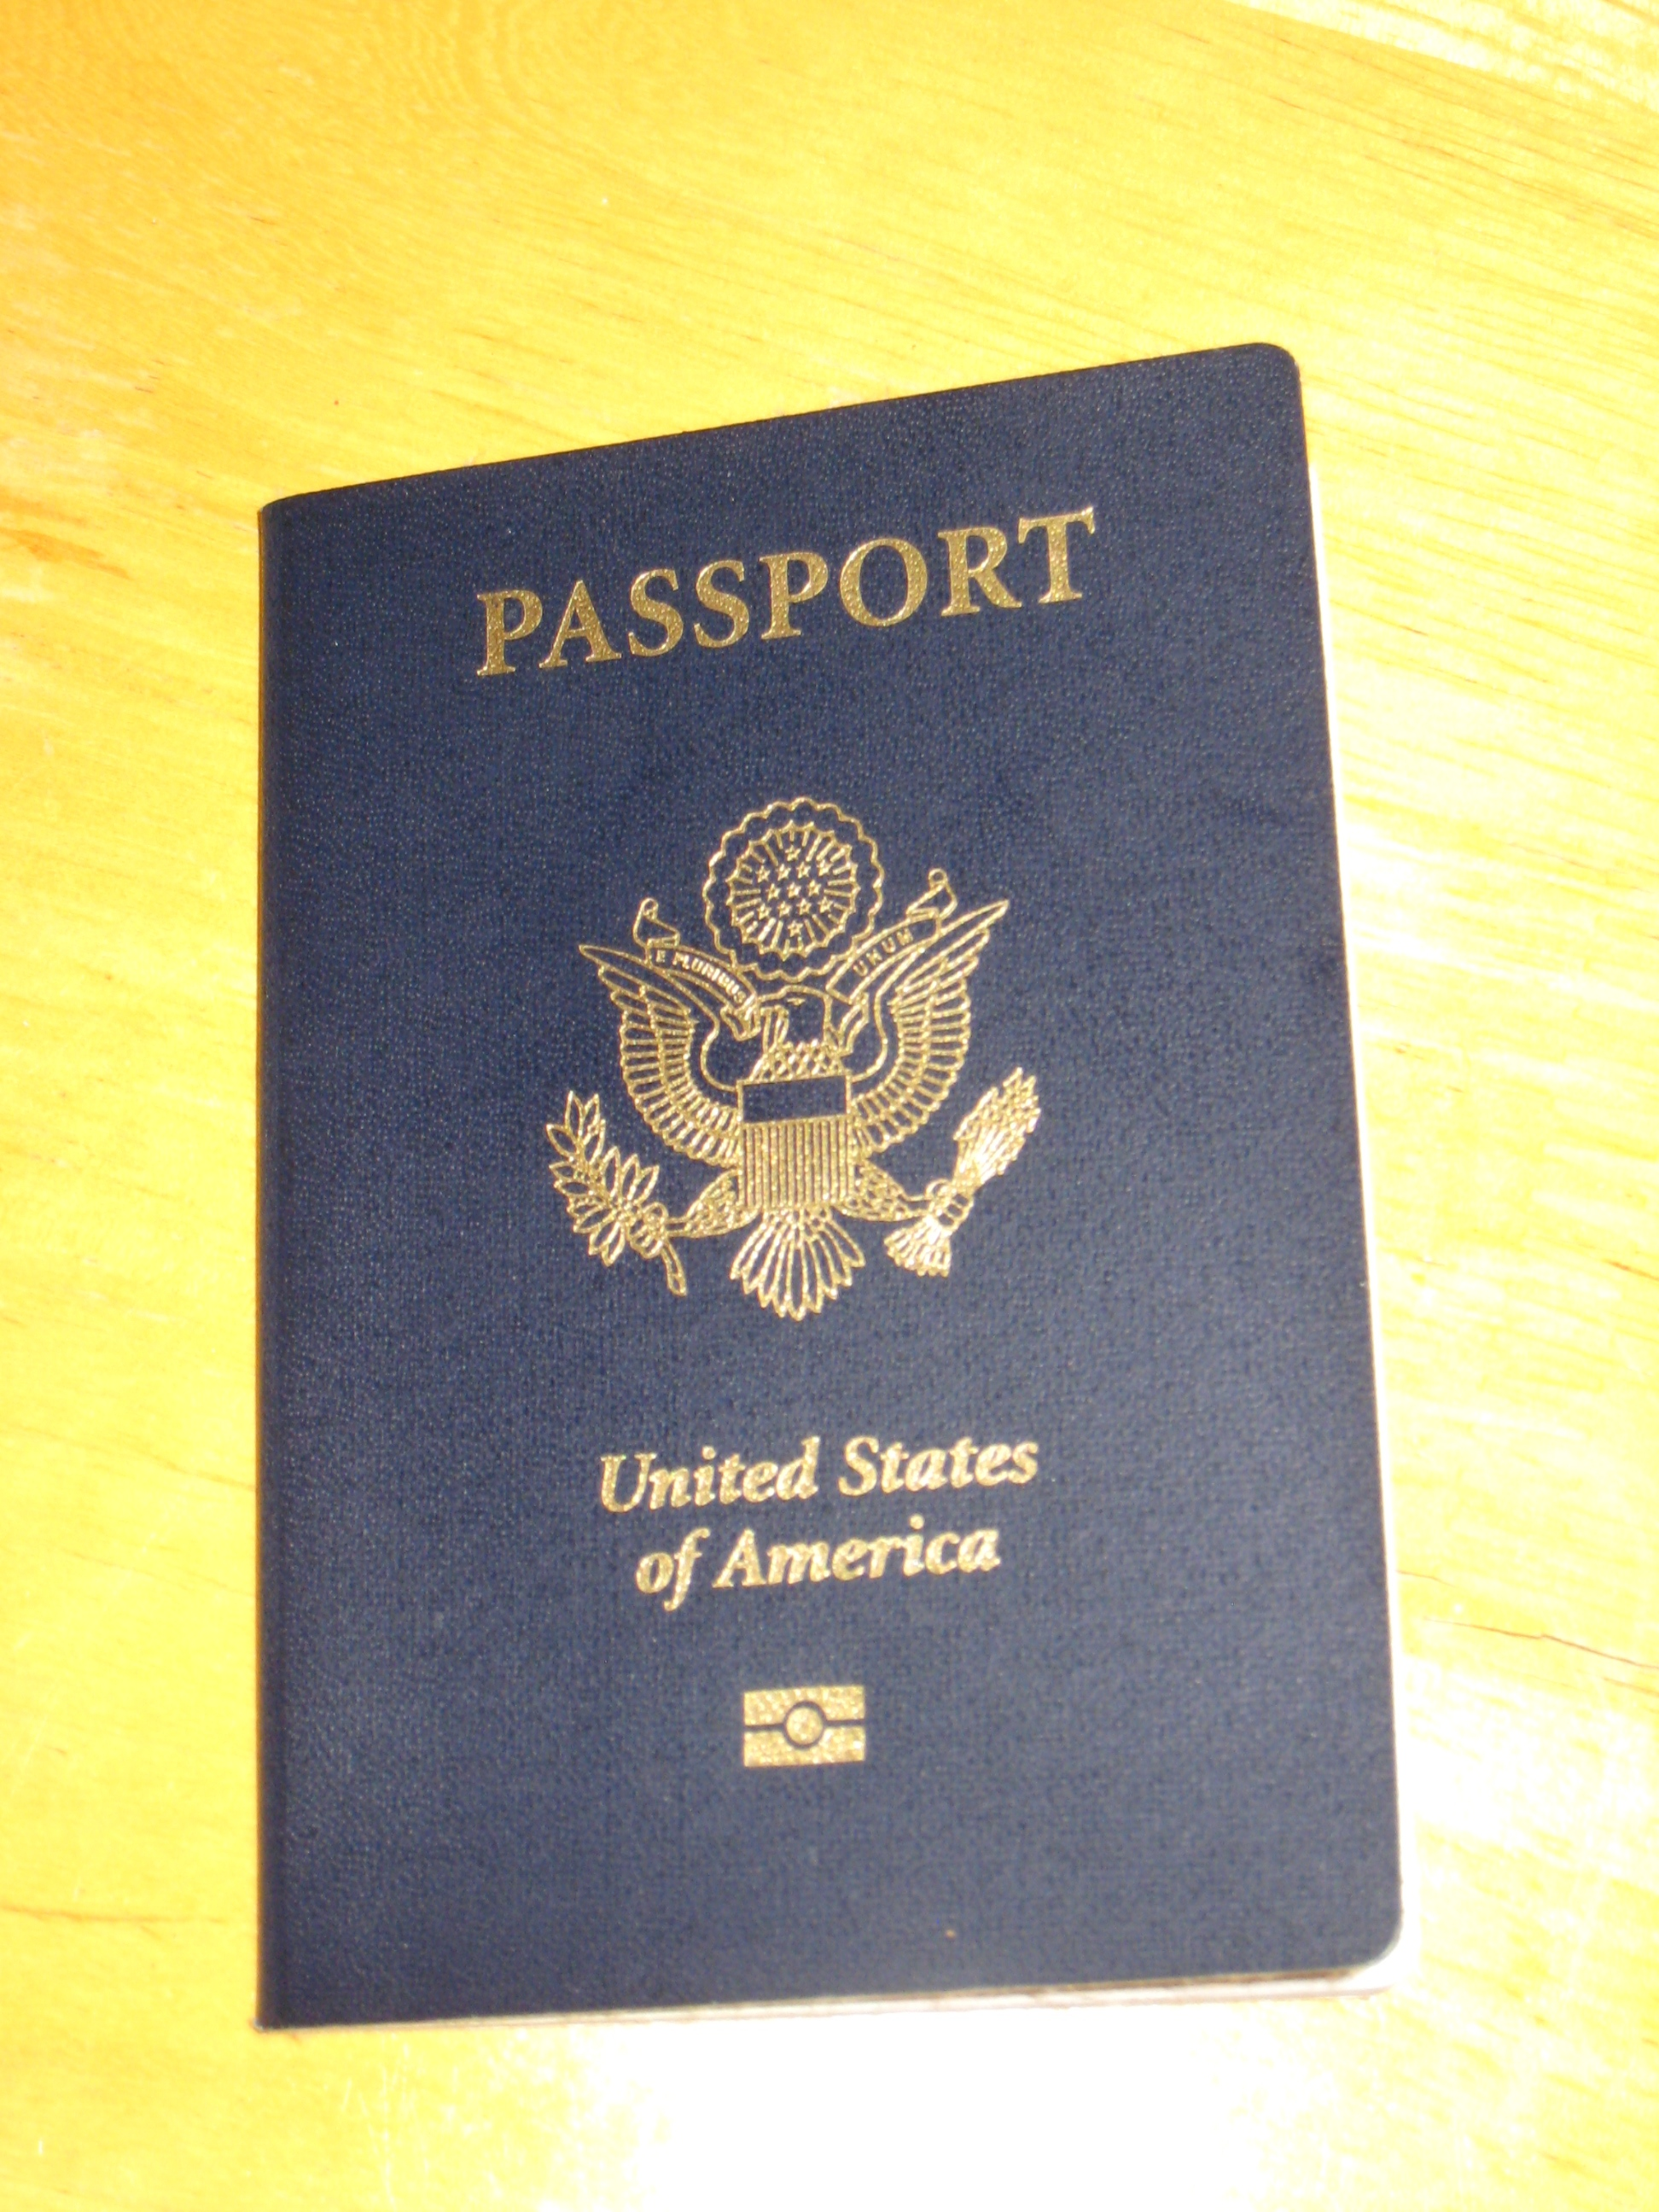 I have my Passport back.